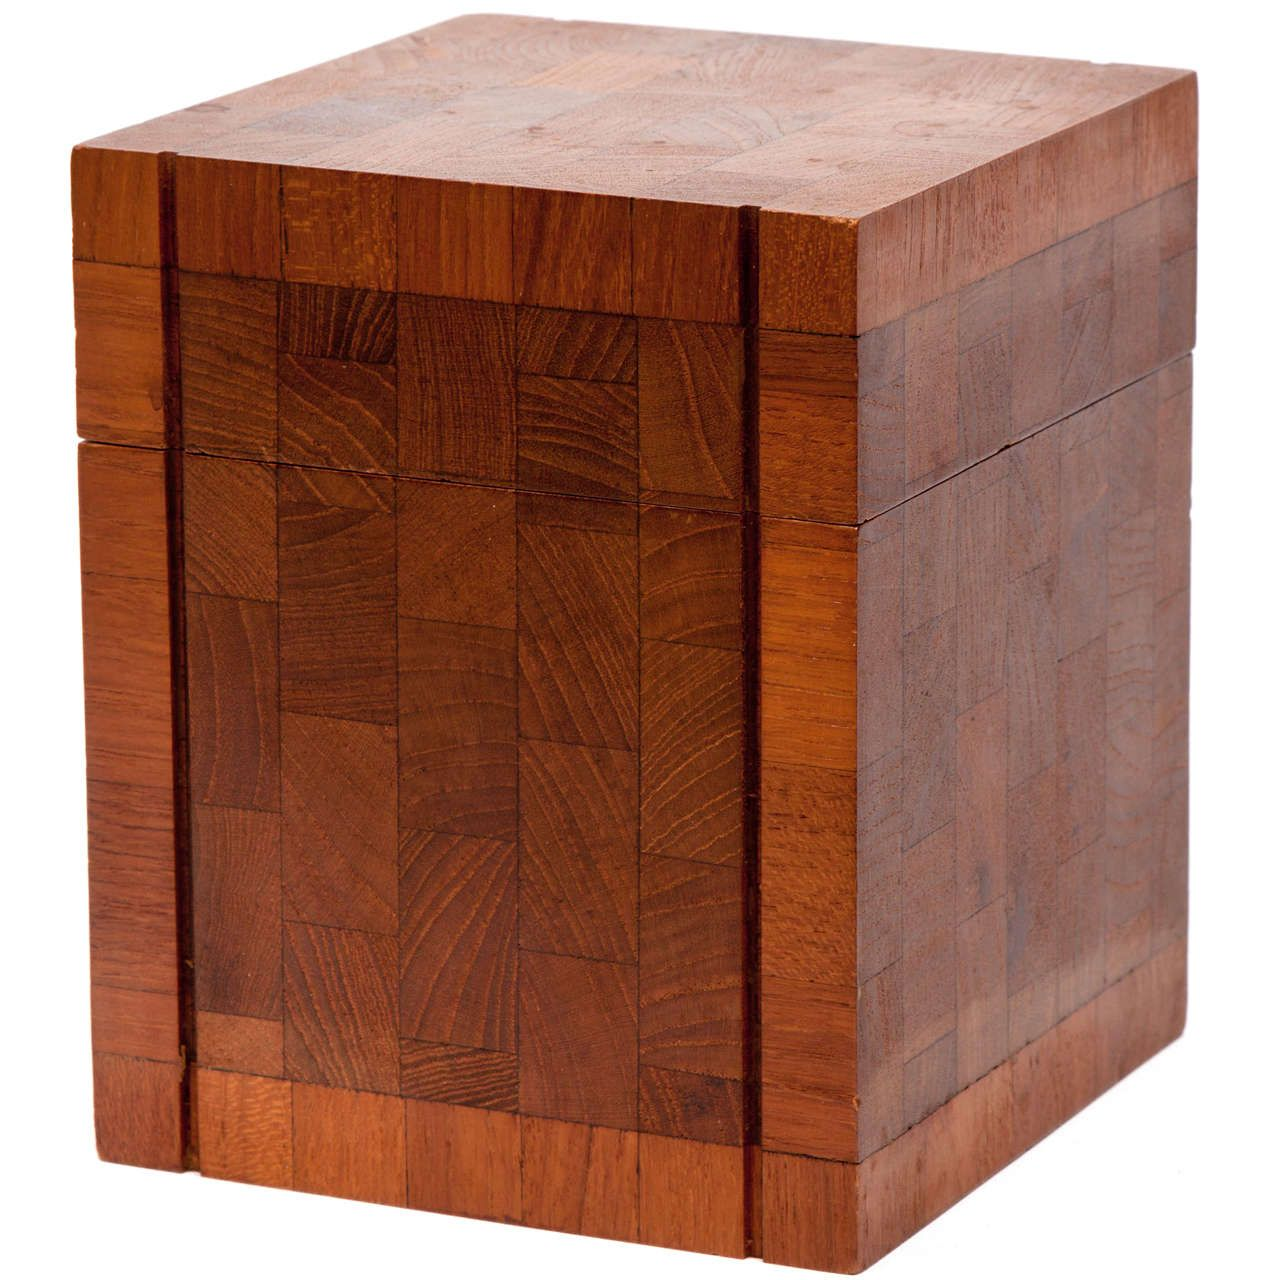 1960s Teak Humidor by Dunhill | From a unique collection of antique and modern tobacco accessories at https://www.1stdibs.com/furniture/more-furniture-collectibles/tobacco-accessories/